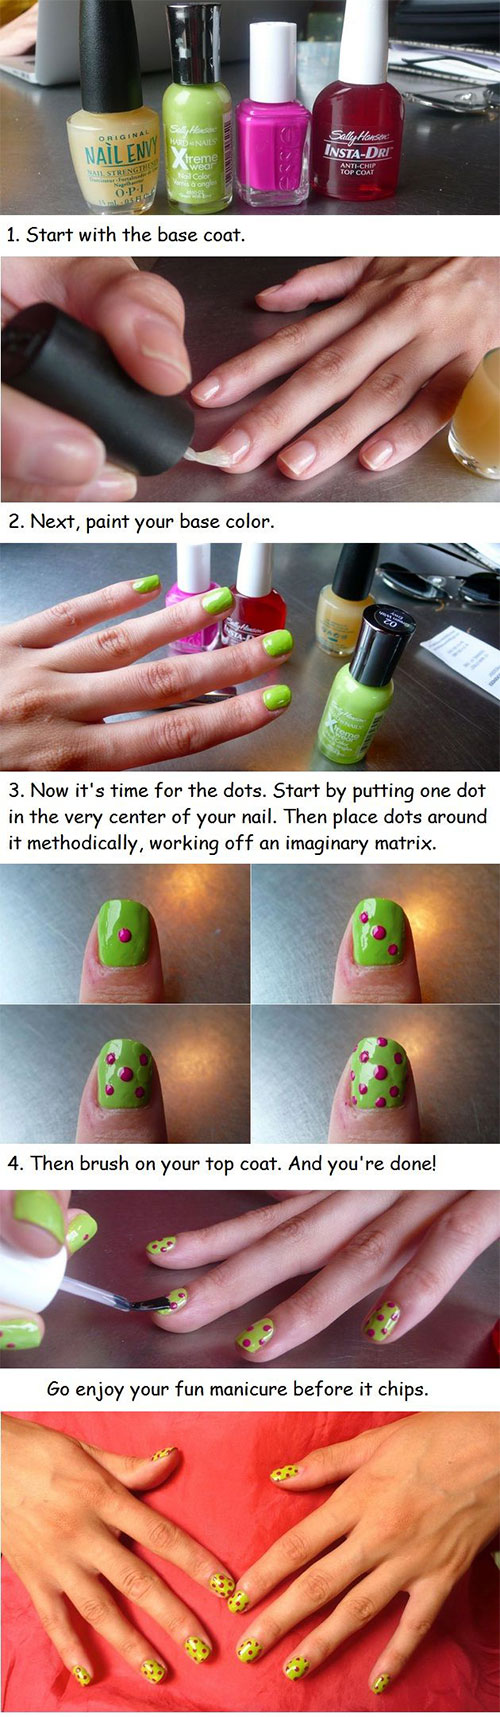 20-Simple-Step-By-Step-Polka-Dots-Nail-Art-Tutorials-For-Beginners-Learners-2014-5